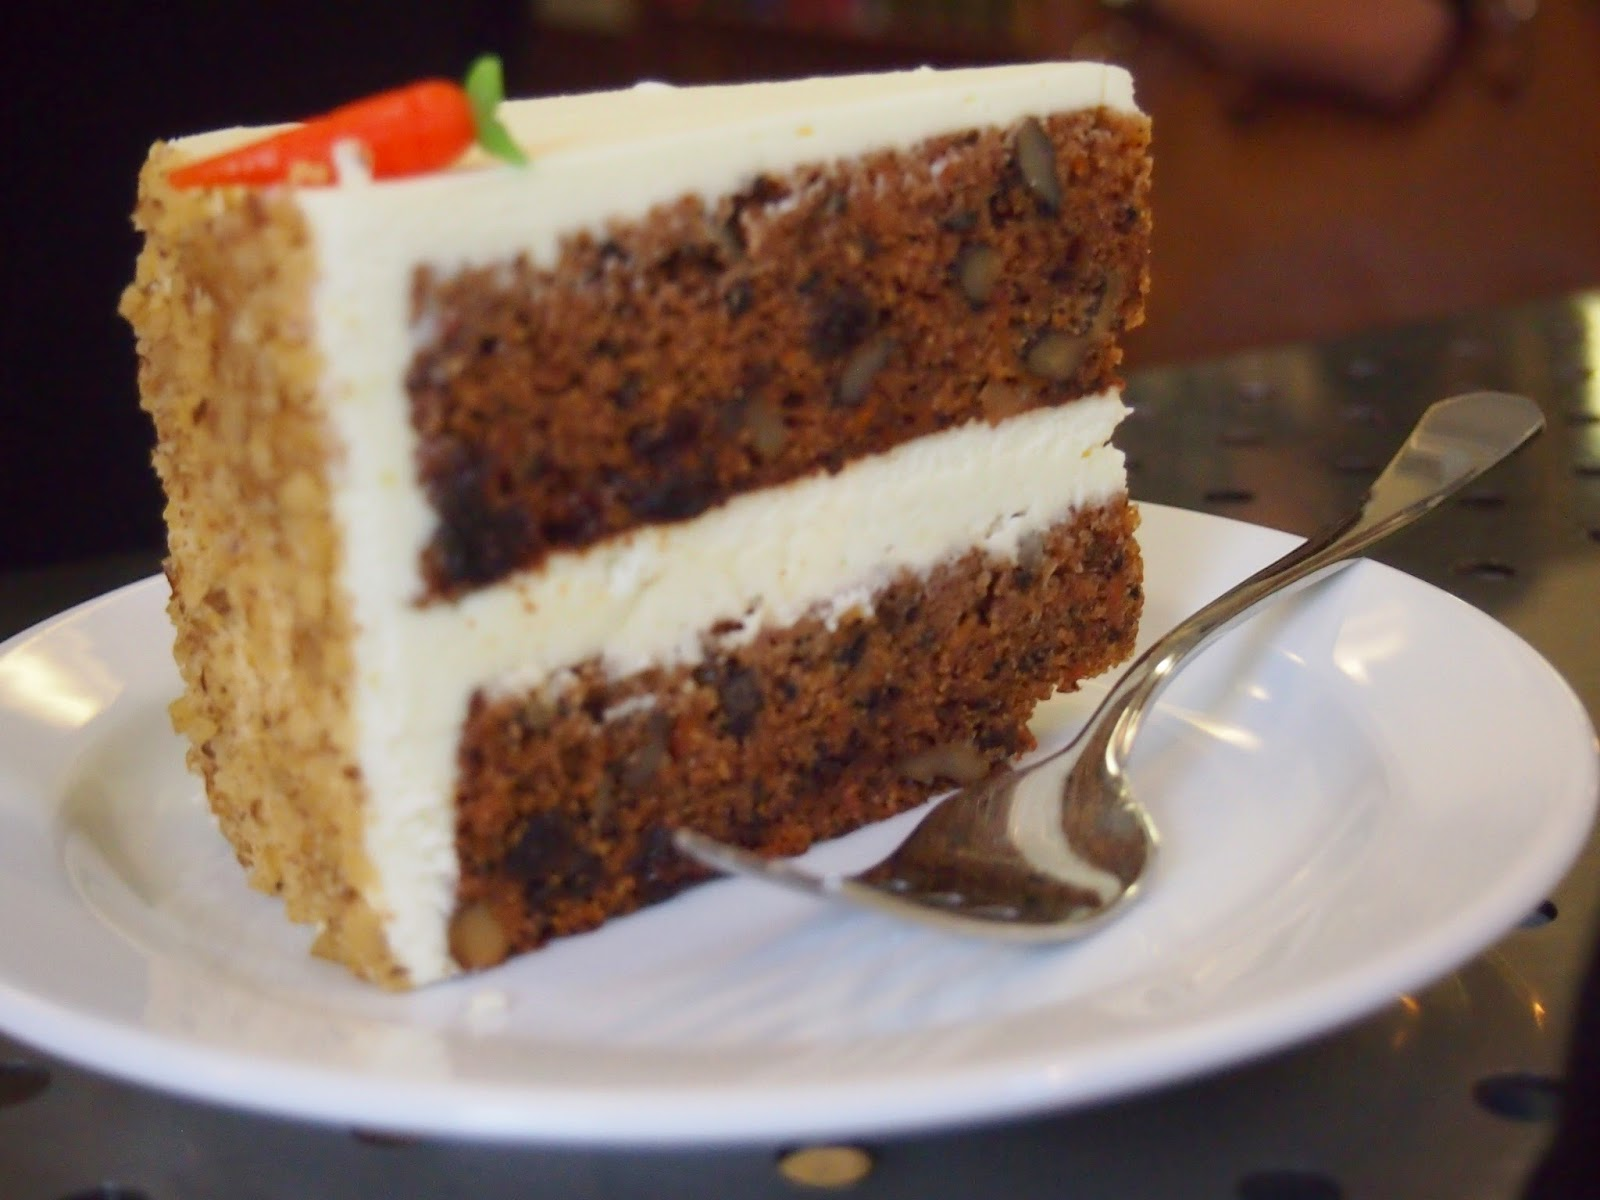 carrot cake from the bake shop